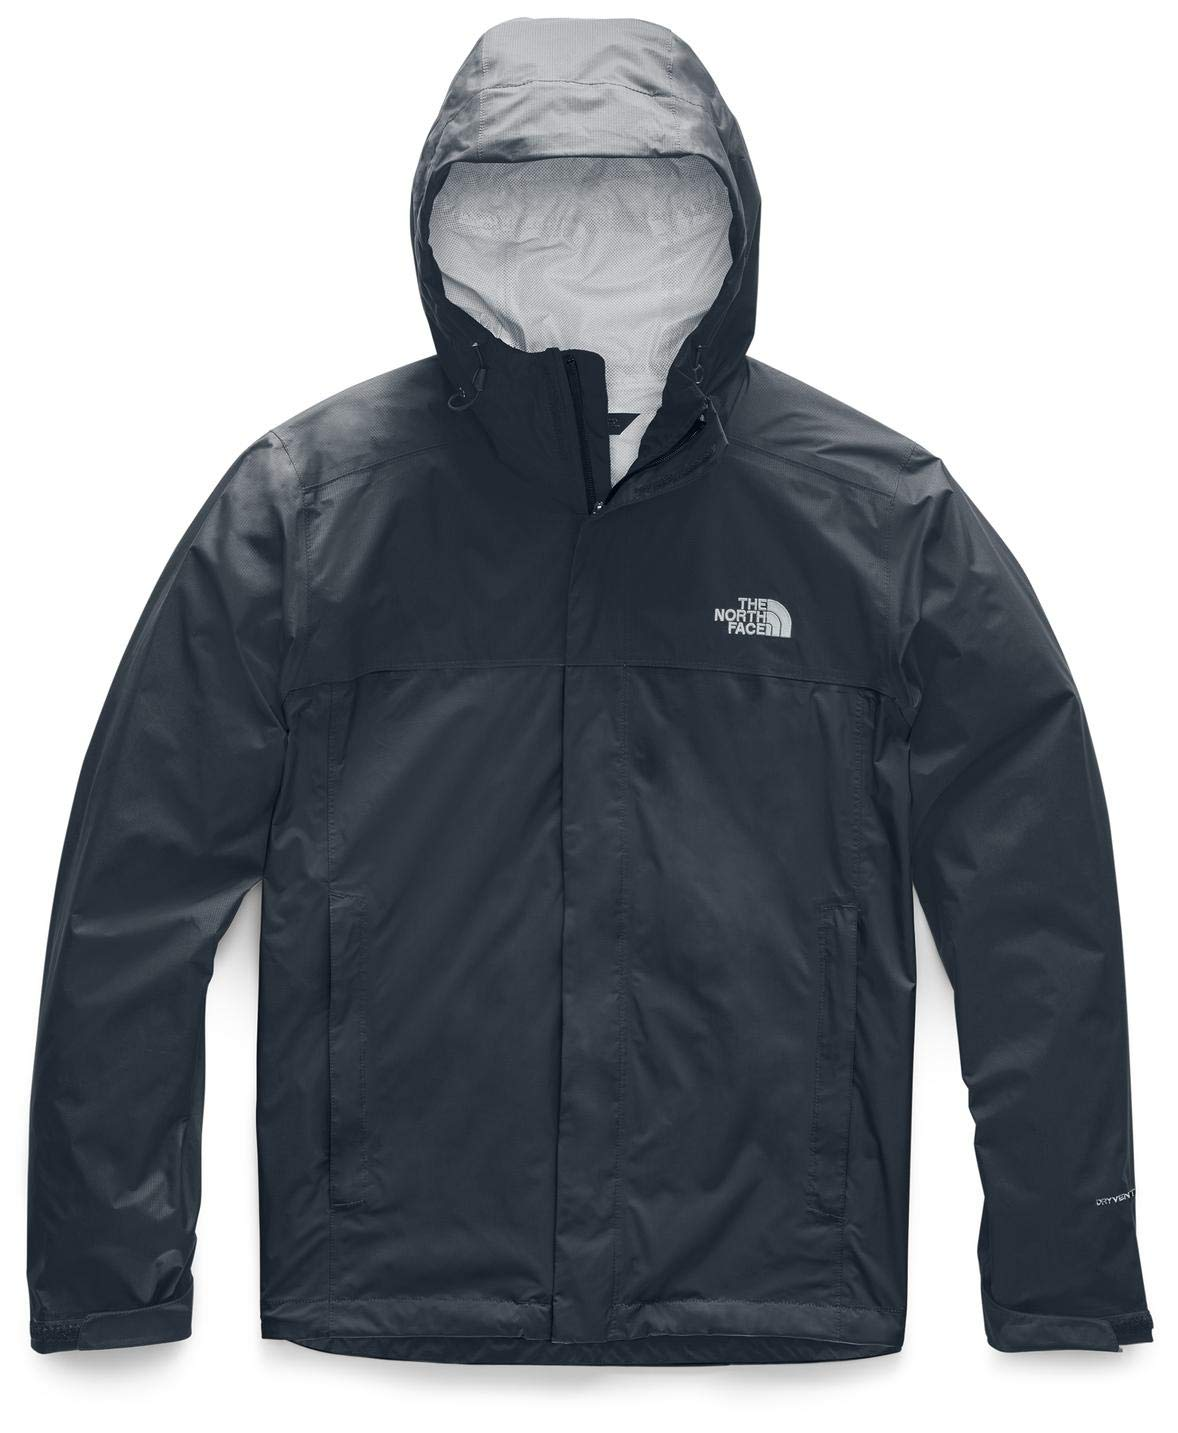 The North Face Men's Venture 2 Jacket - Tall, Urban Navy, XL by The North Face